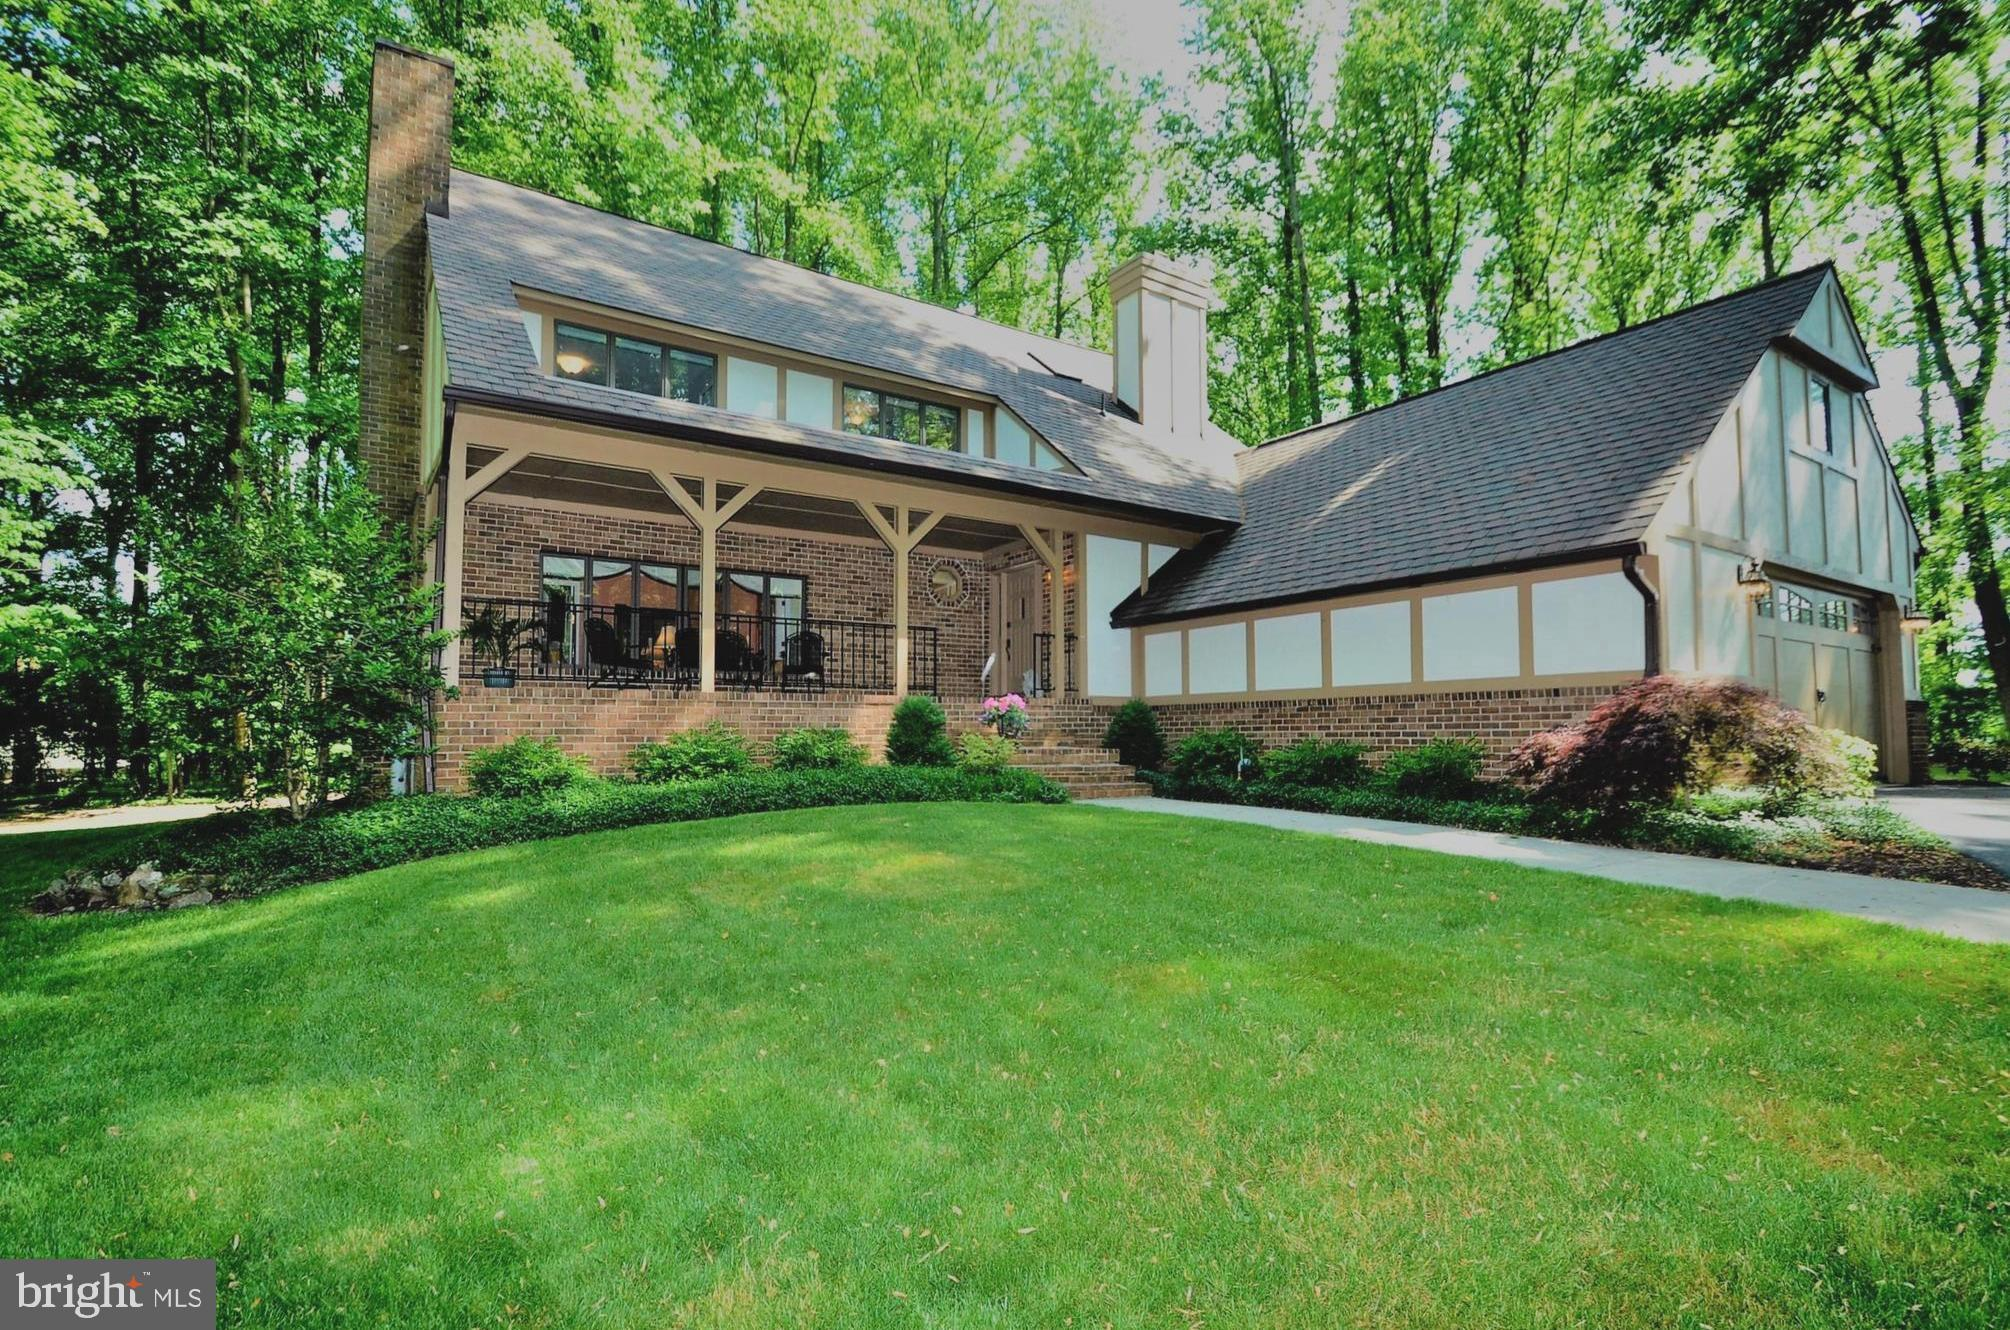 1ST OPEN HOUSE SATURDAY JUNE 19TH & SUNDAY JUNE 20TH. 1:30-3:30 PRIVATE PARK-LIKE SETTING ON 2 ACRES